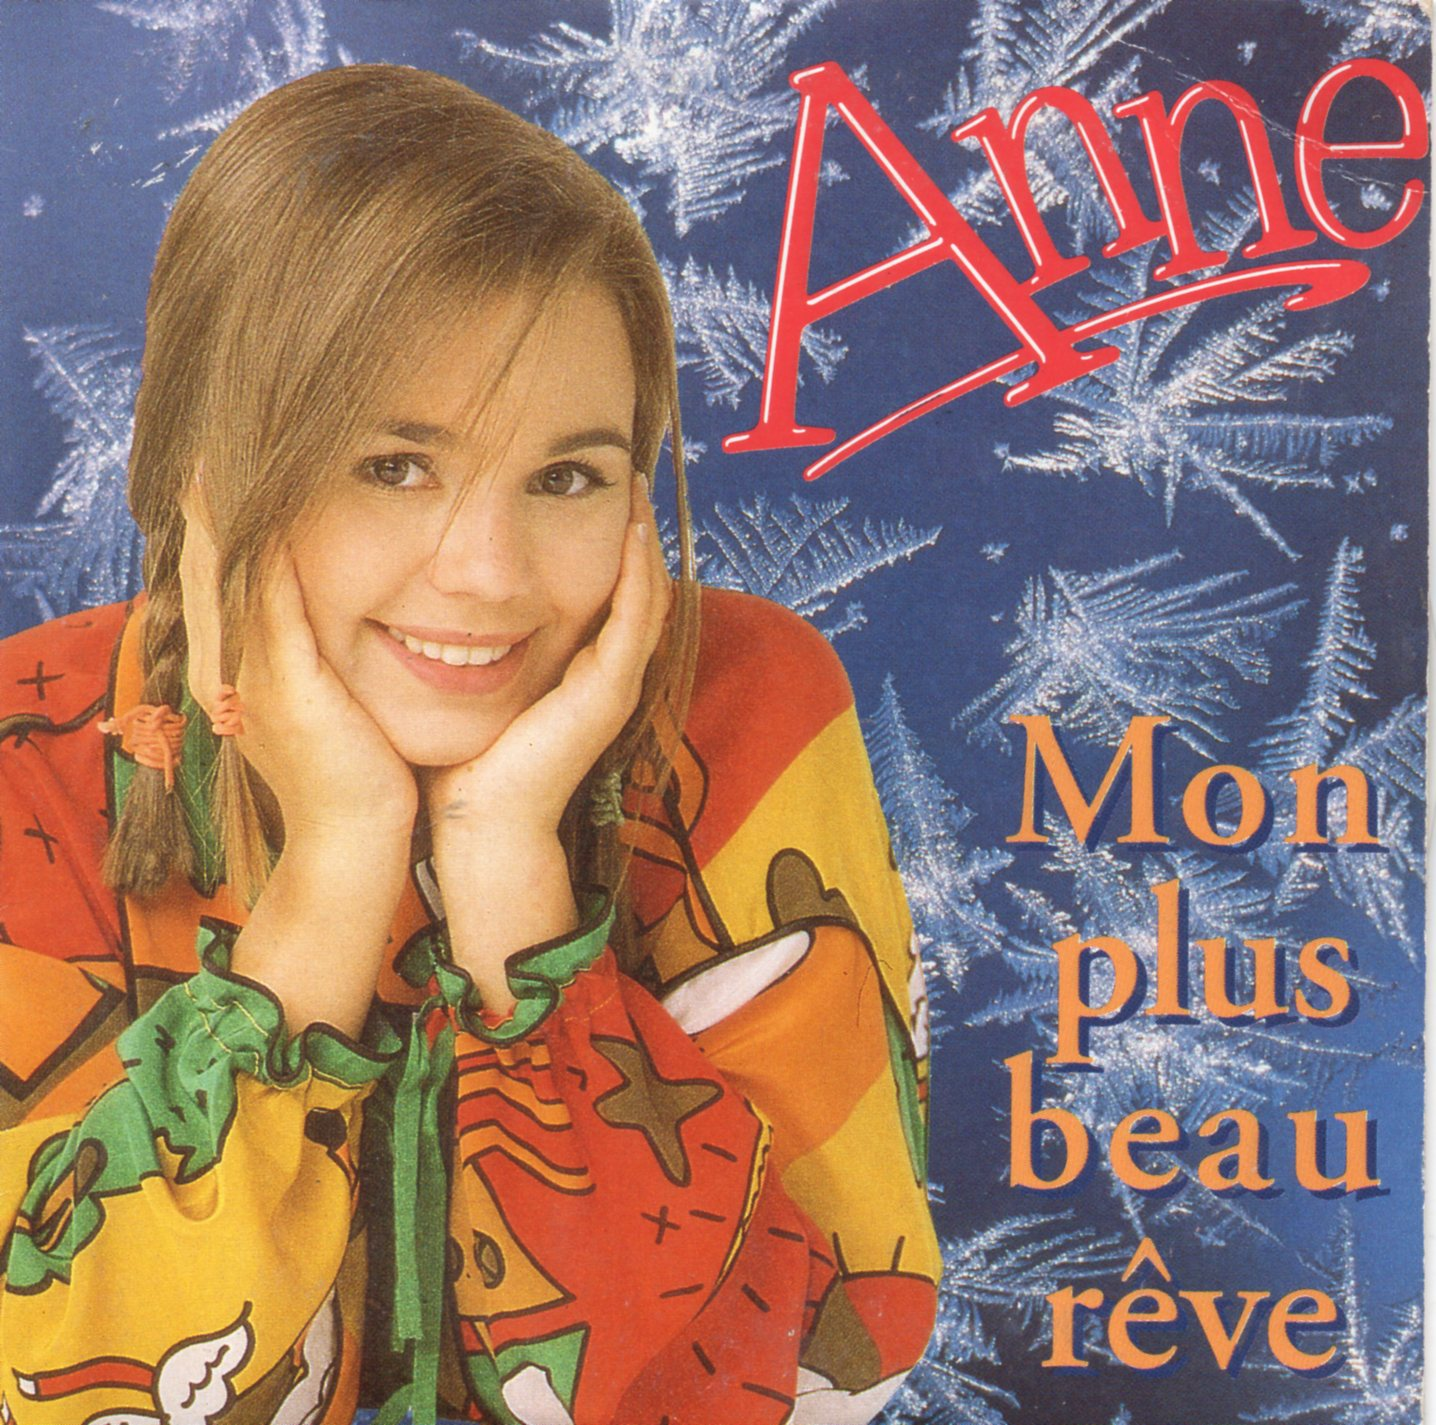 ANNE - WALT DISNEY - Mon plus beau rêve 2-track CARD SLEEVE - CD single